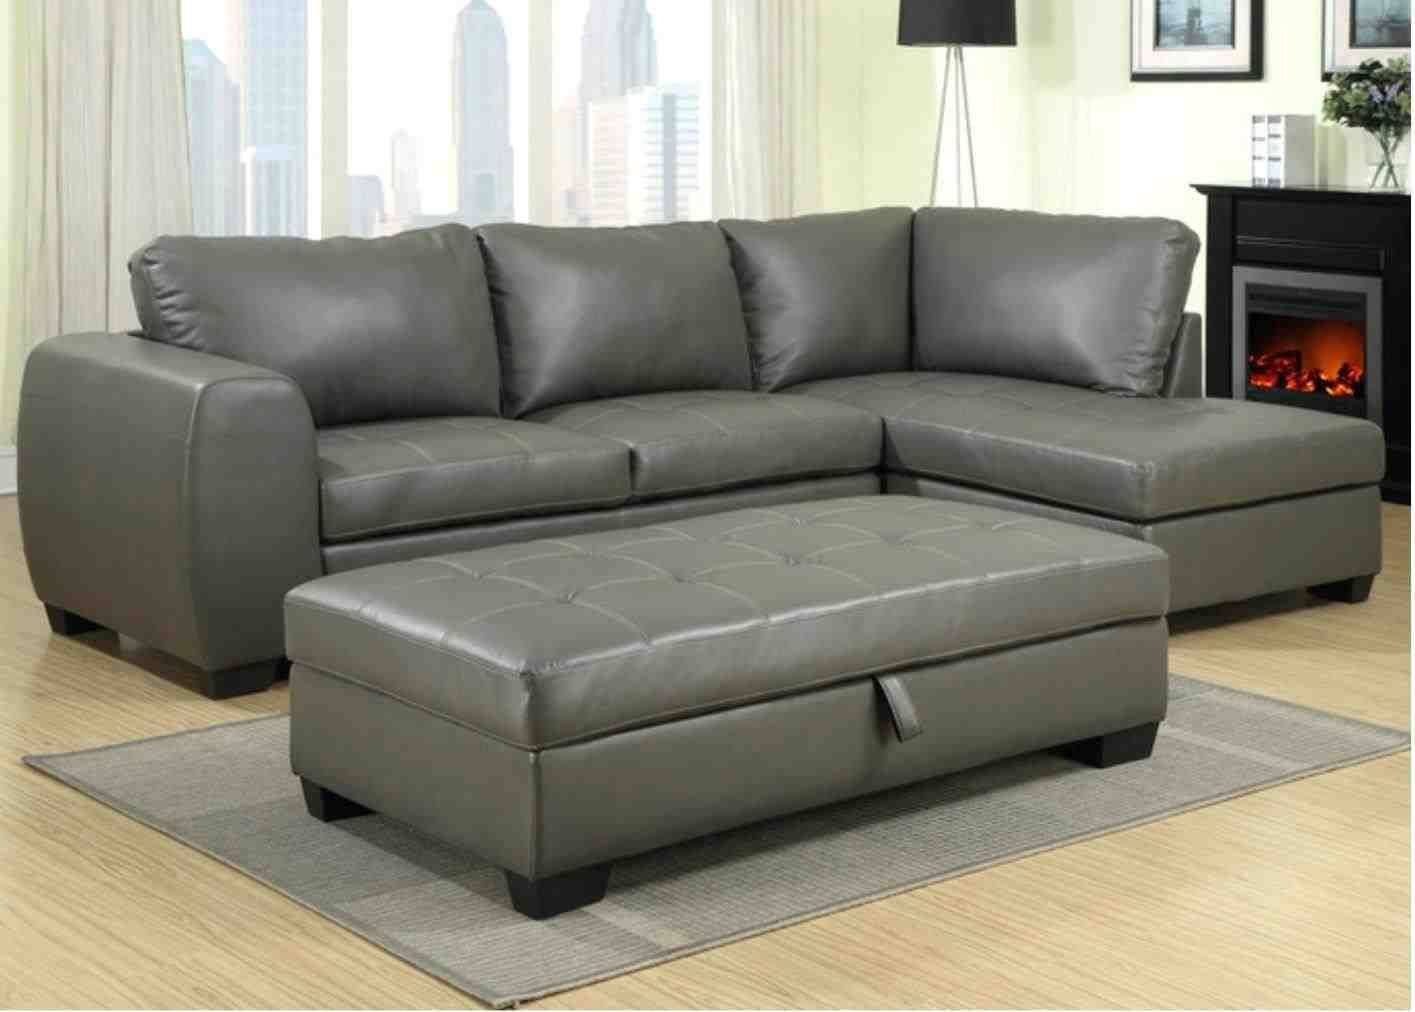 Cheap Leather Sofas Leicester The Harris Tweed Leather Sofa Glamorous Land Of Leather Corner Sofas Leather Corner Sofa Leather Sofa Decor Grey Leather Sofa